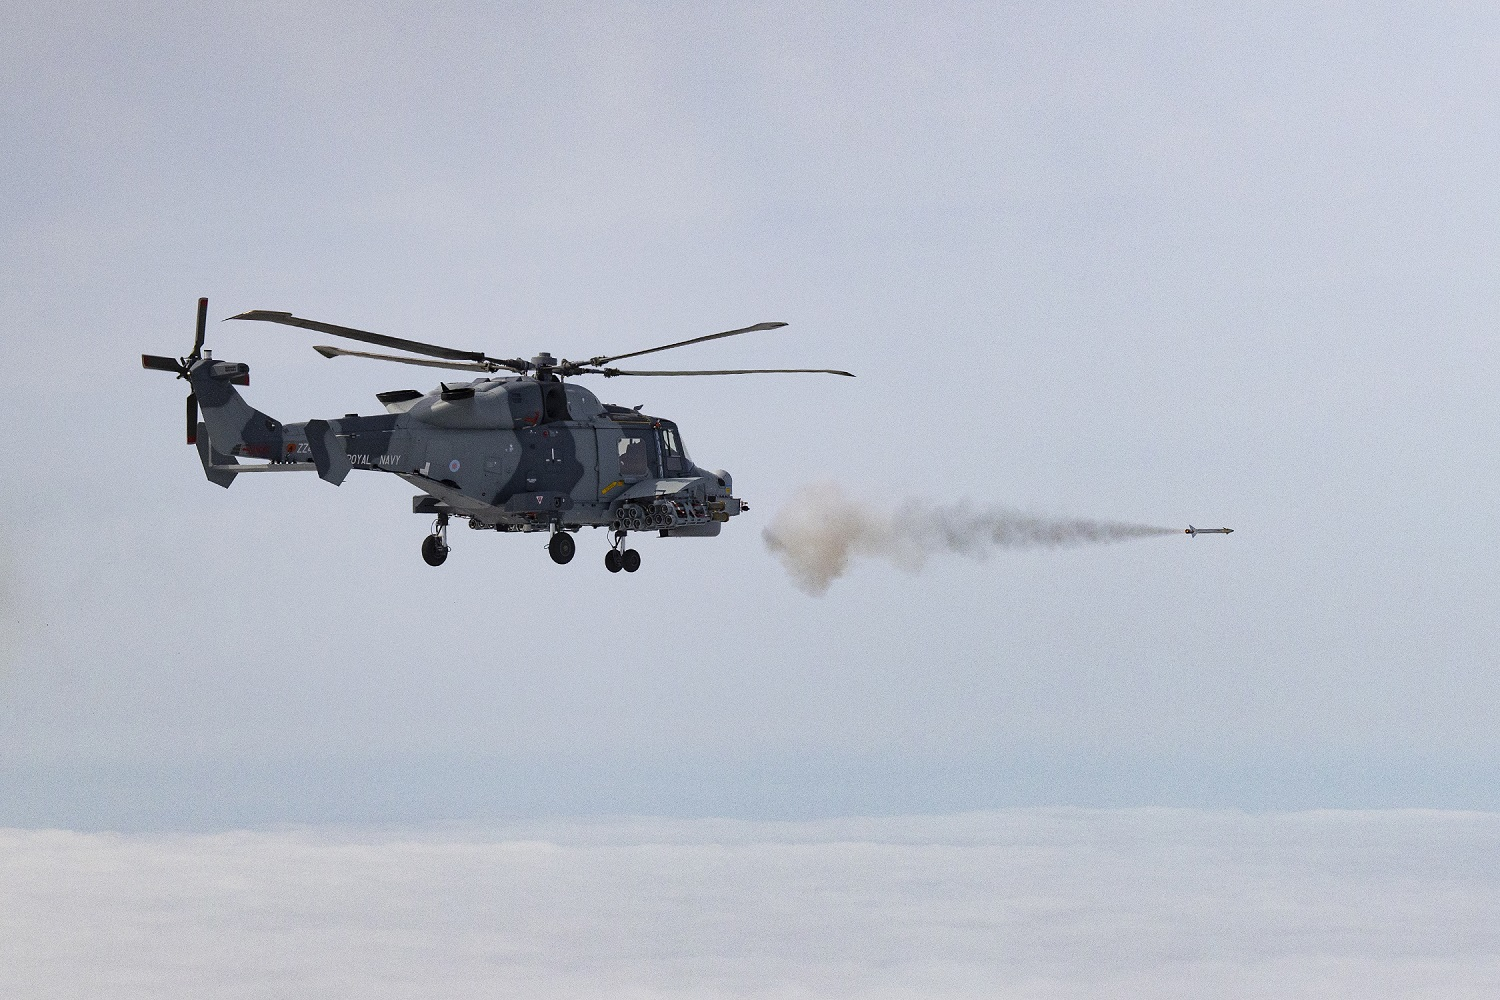 Royal Navy Helicopter Unleashes New Martlet Missile to Protect Aircraft Carriers